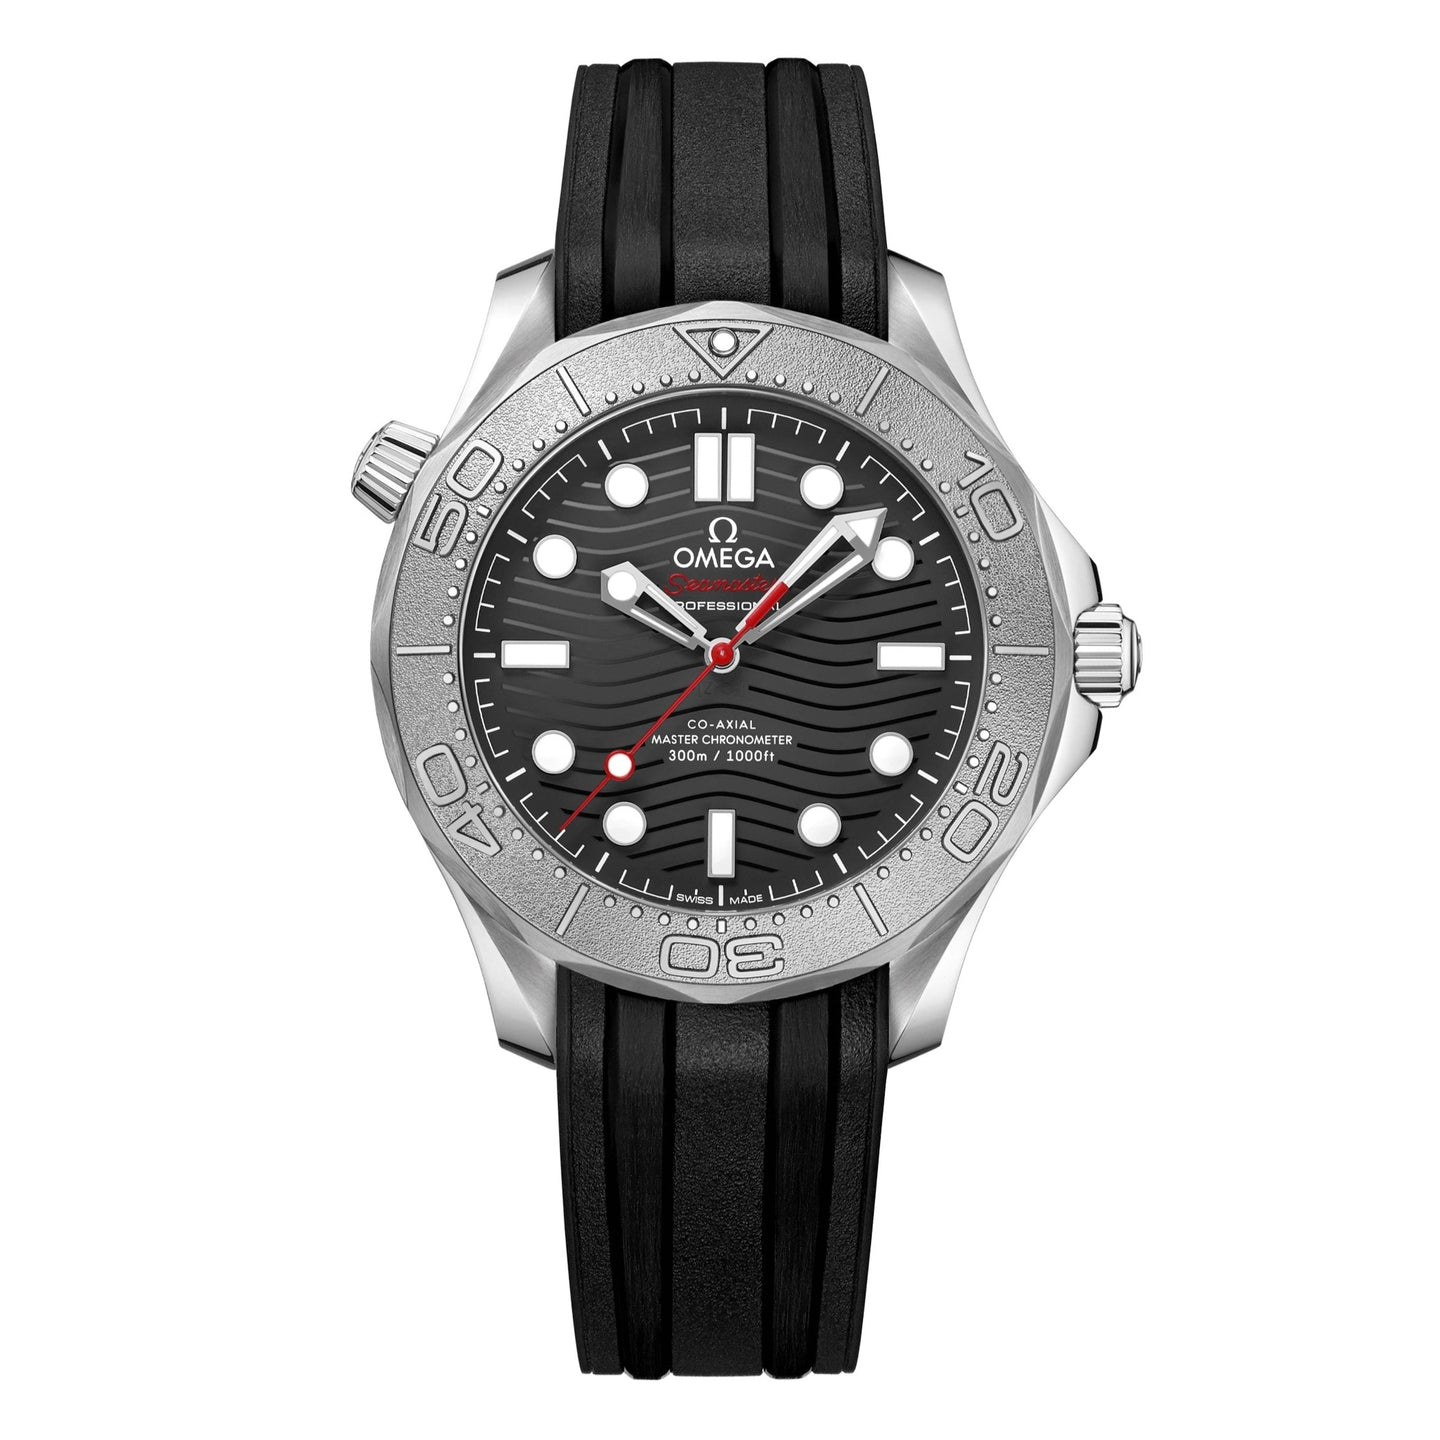 OMEGA Seamaster Diver 300M Co-Axial Master Chronometer 42mm with Titanium Bezel and Black Rubber Strap